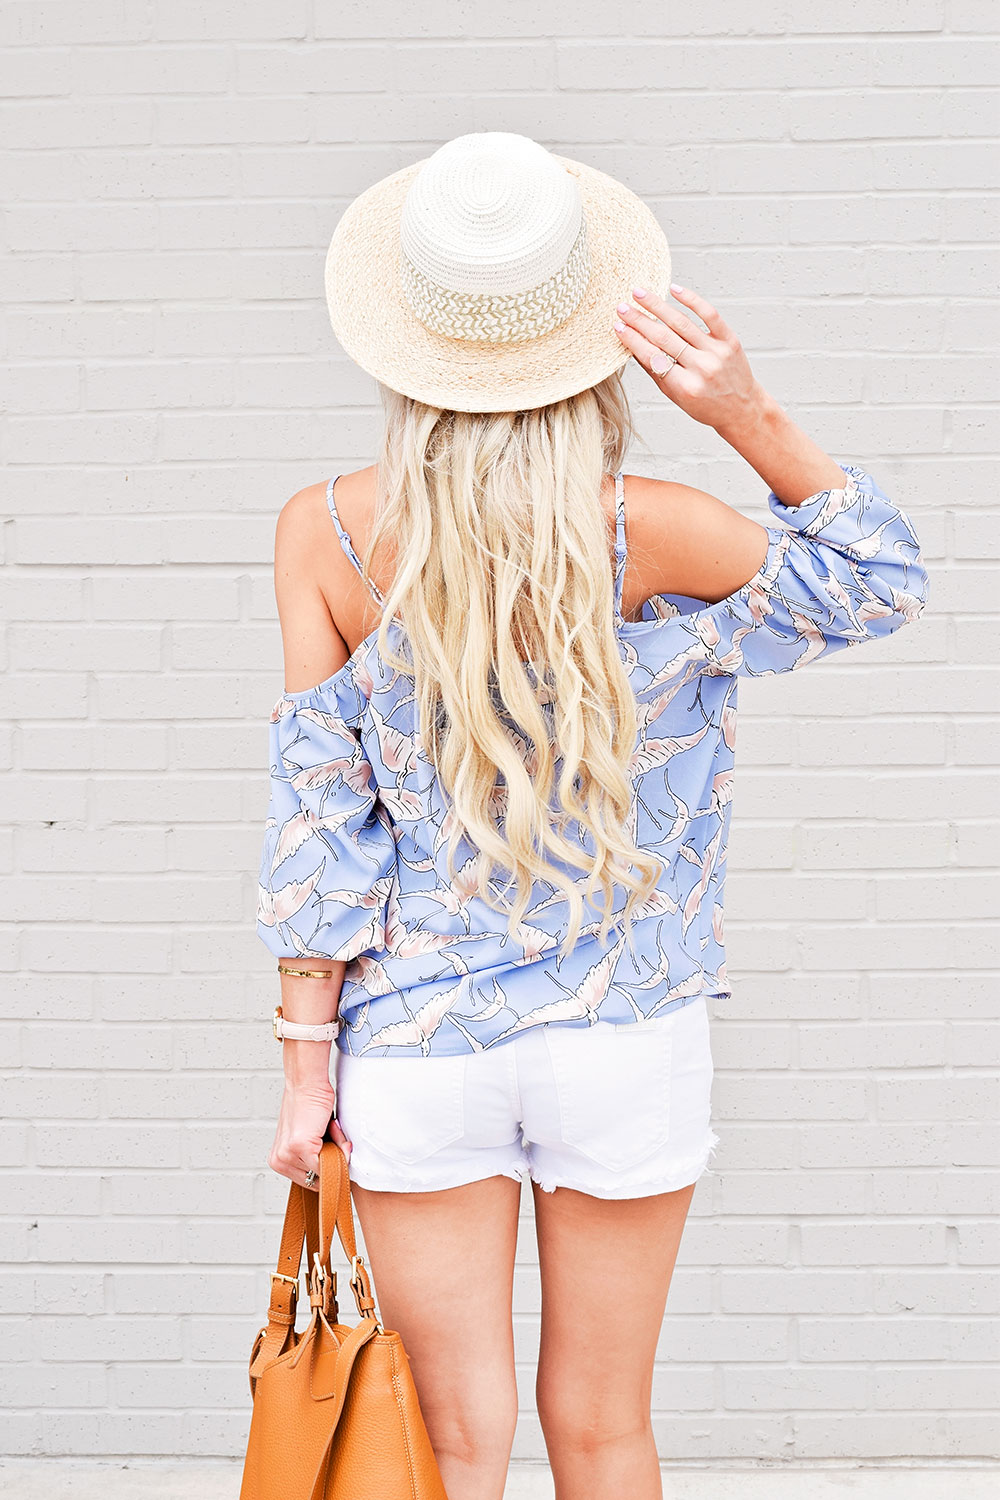 cold-shoulder-top-with-crossover-front-and-bird-print